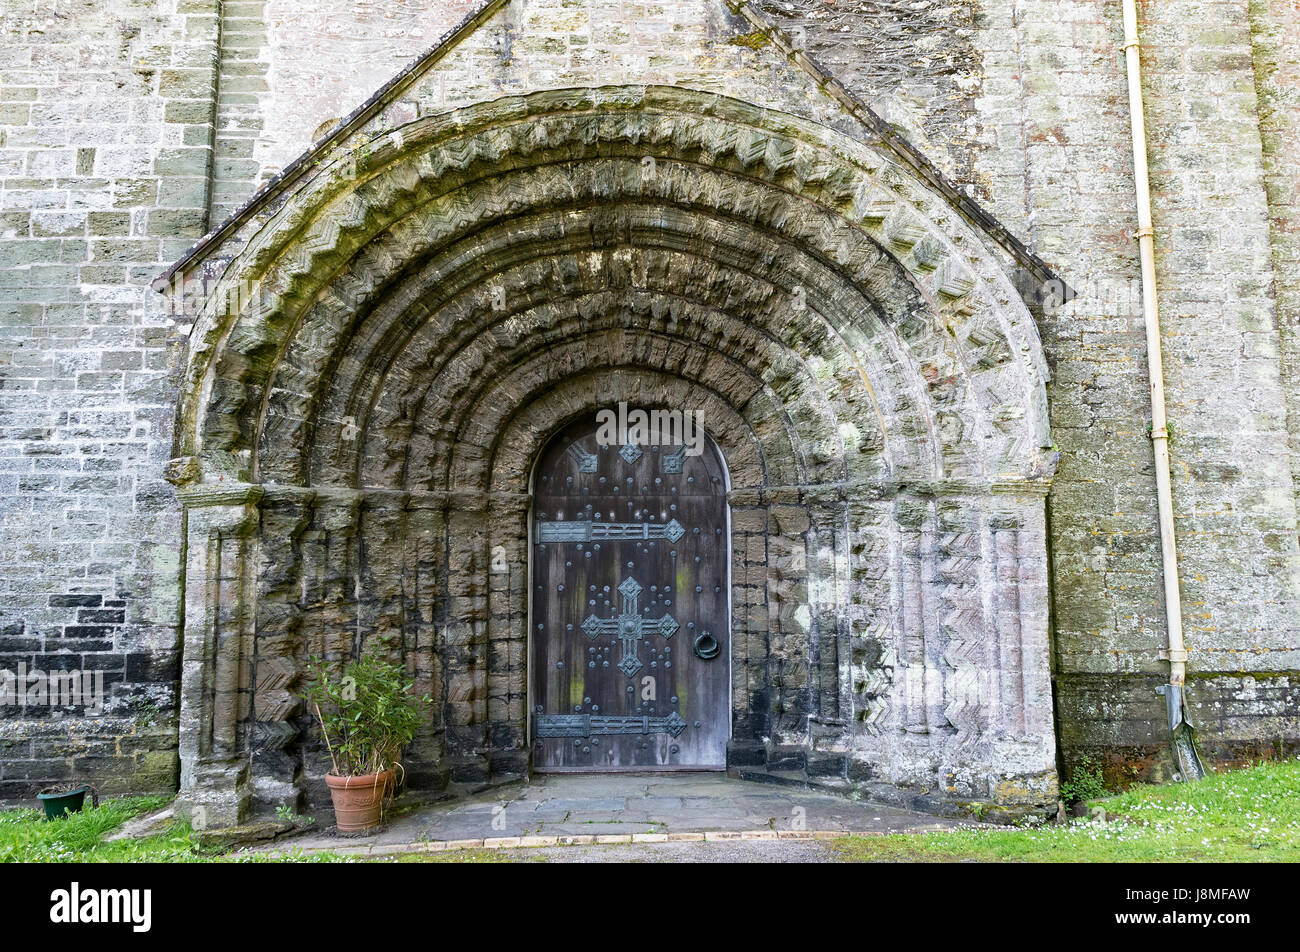 the west doorway, norman architecture, at st.germans priory in cornwall, england, britain, uk, - Stock Image